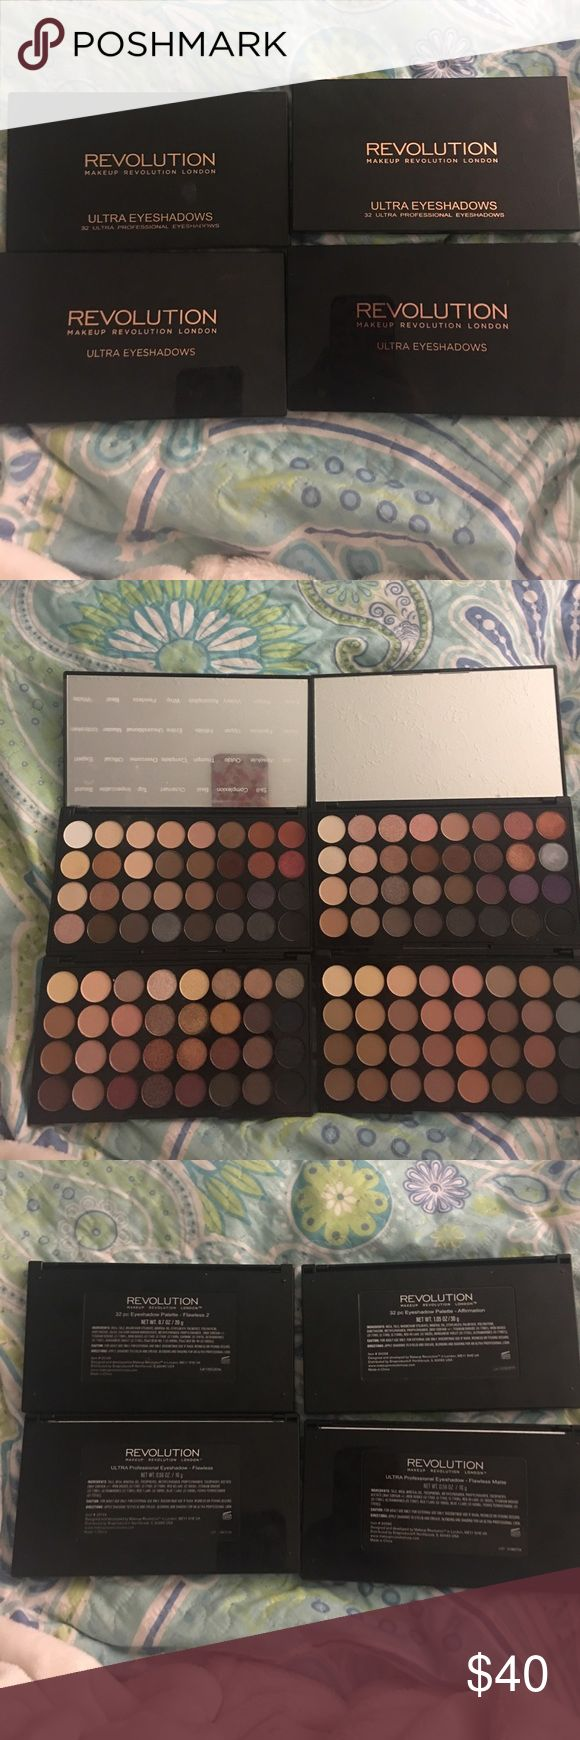 Makeup Revolution Palettes 4 palette bundle includes: Flawless Flawless 2 Flawless Matte and Affirmation palettes. These palettes are $20 each so the price is FIRM (unless bundled.) Makeup Revolution Makeup Eyeshadow